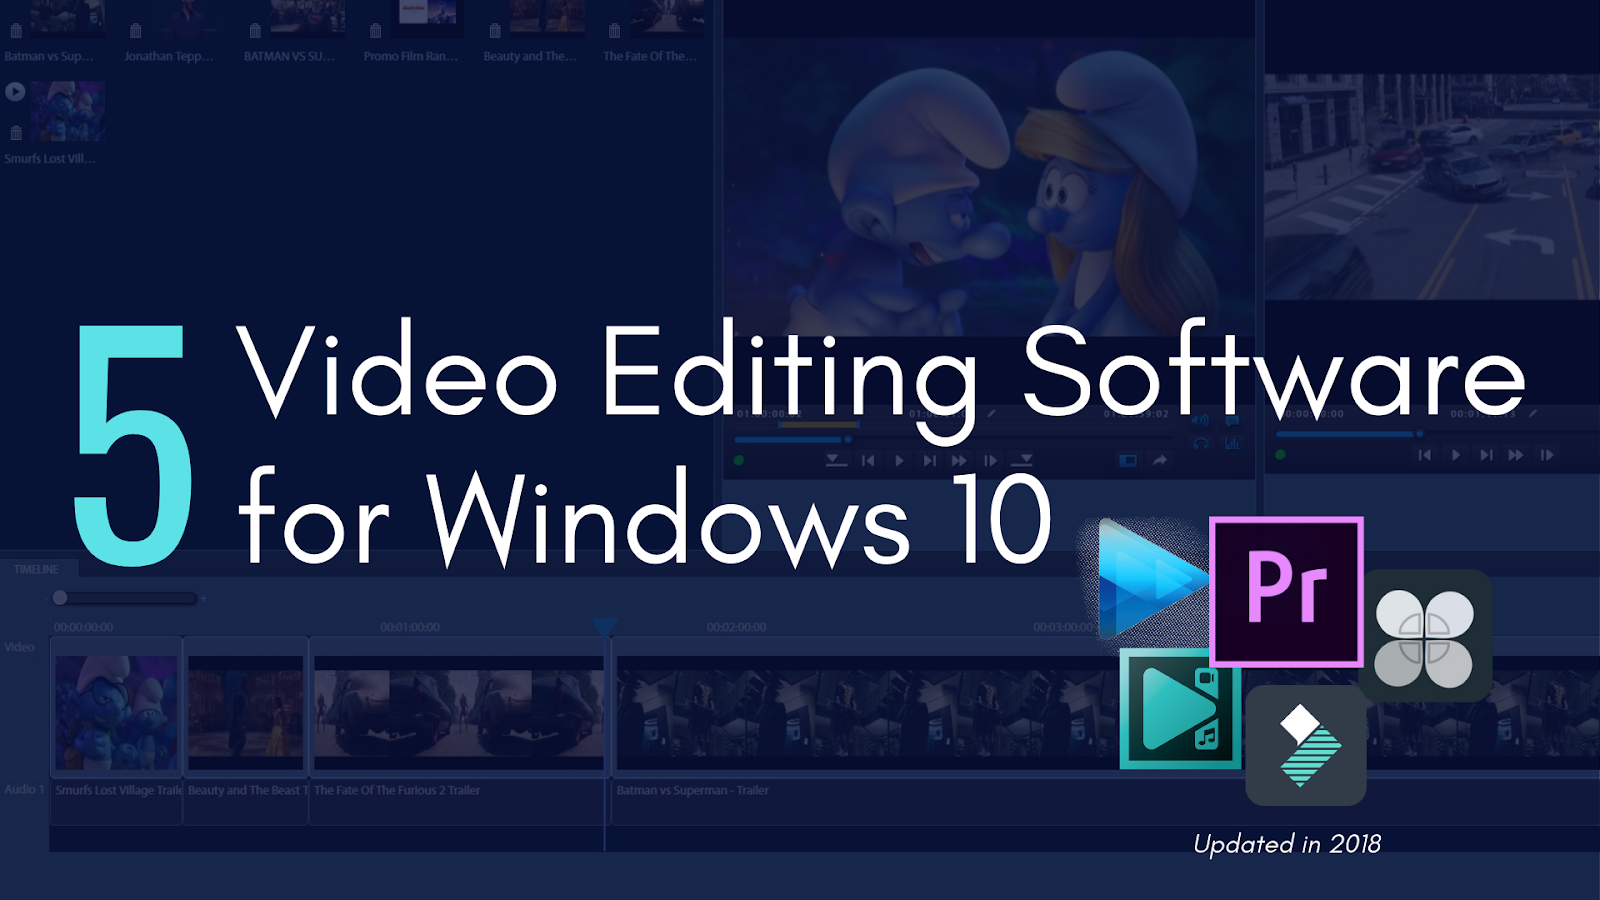 Top 5 Video Editing Software for Windows 10 in 2018 - Top